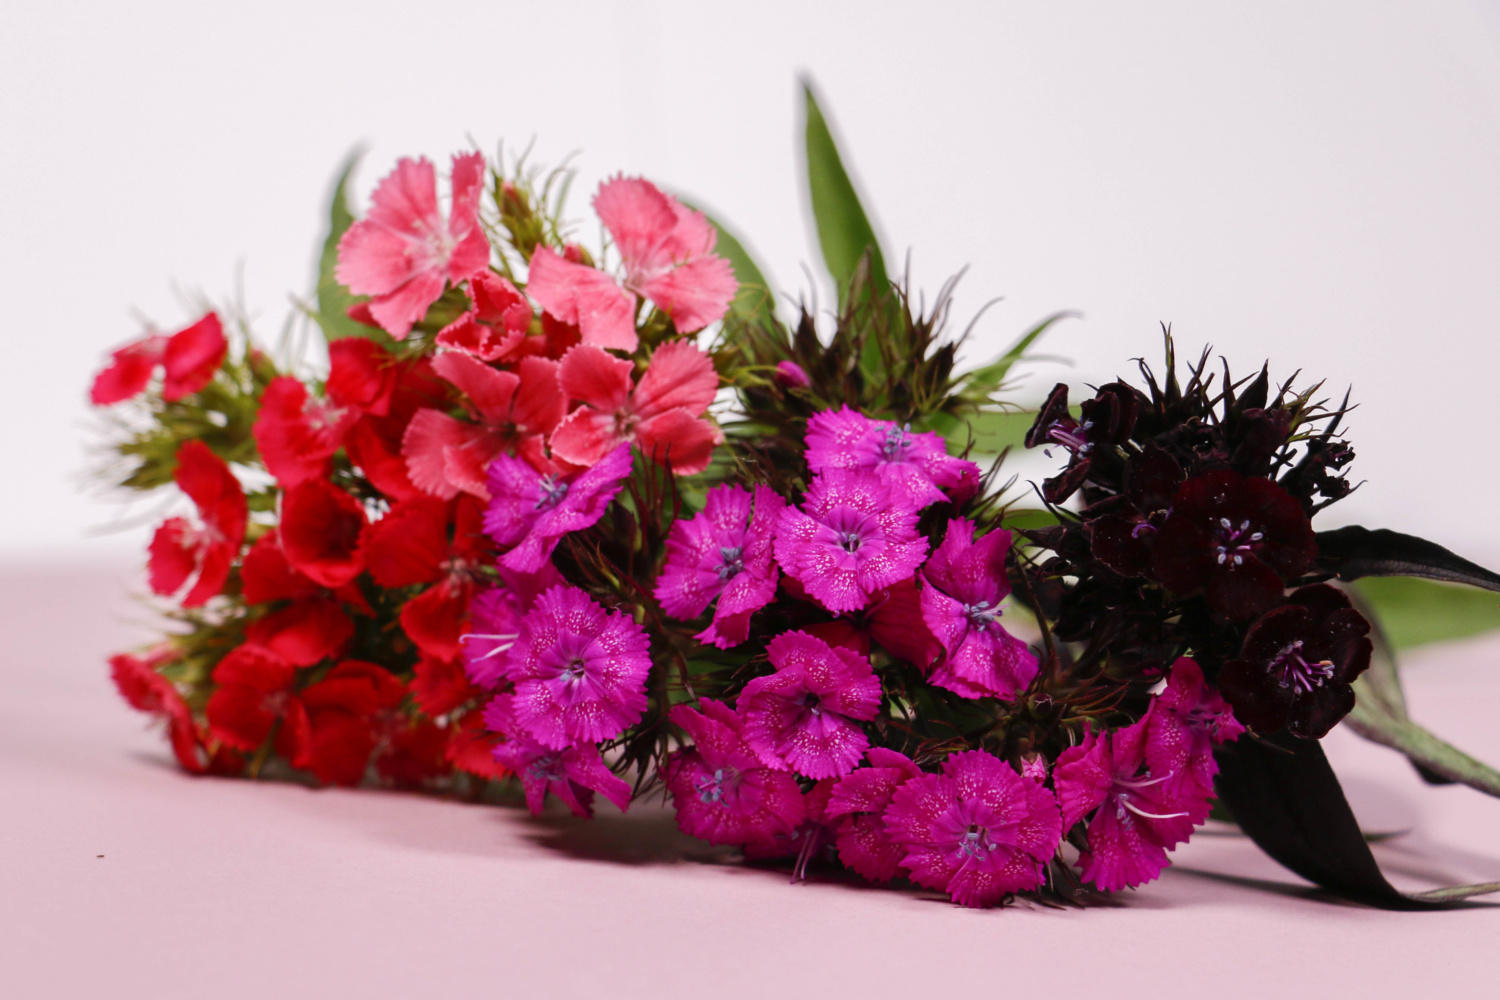 British flowers, grown on a British flower farm. The 2019 guide to cut flowers in your home. Malvern Garden Buildings. Showsites in Staffordshire, Shepperton, Wiltshire, Oxfordshire and Buckinghamshire